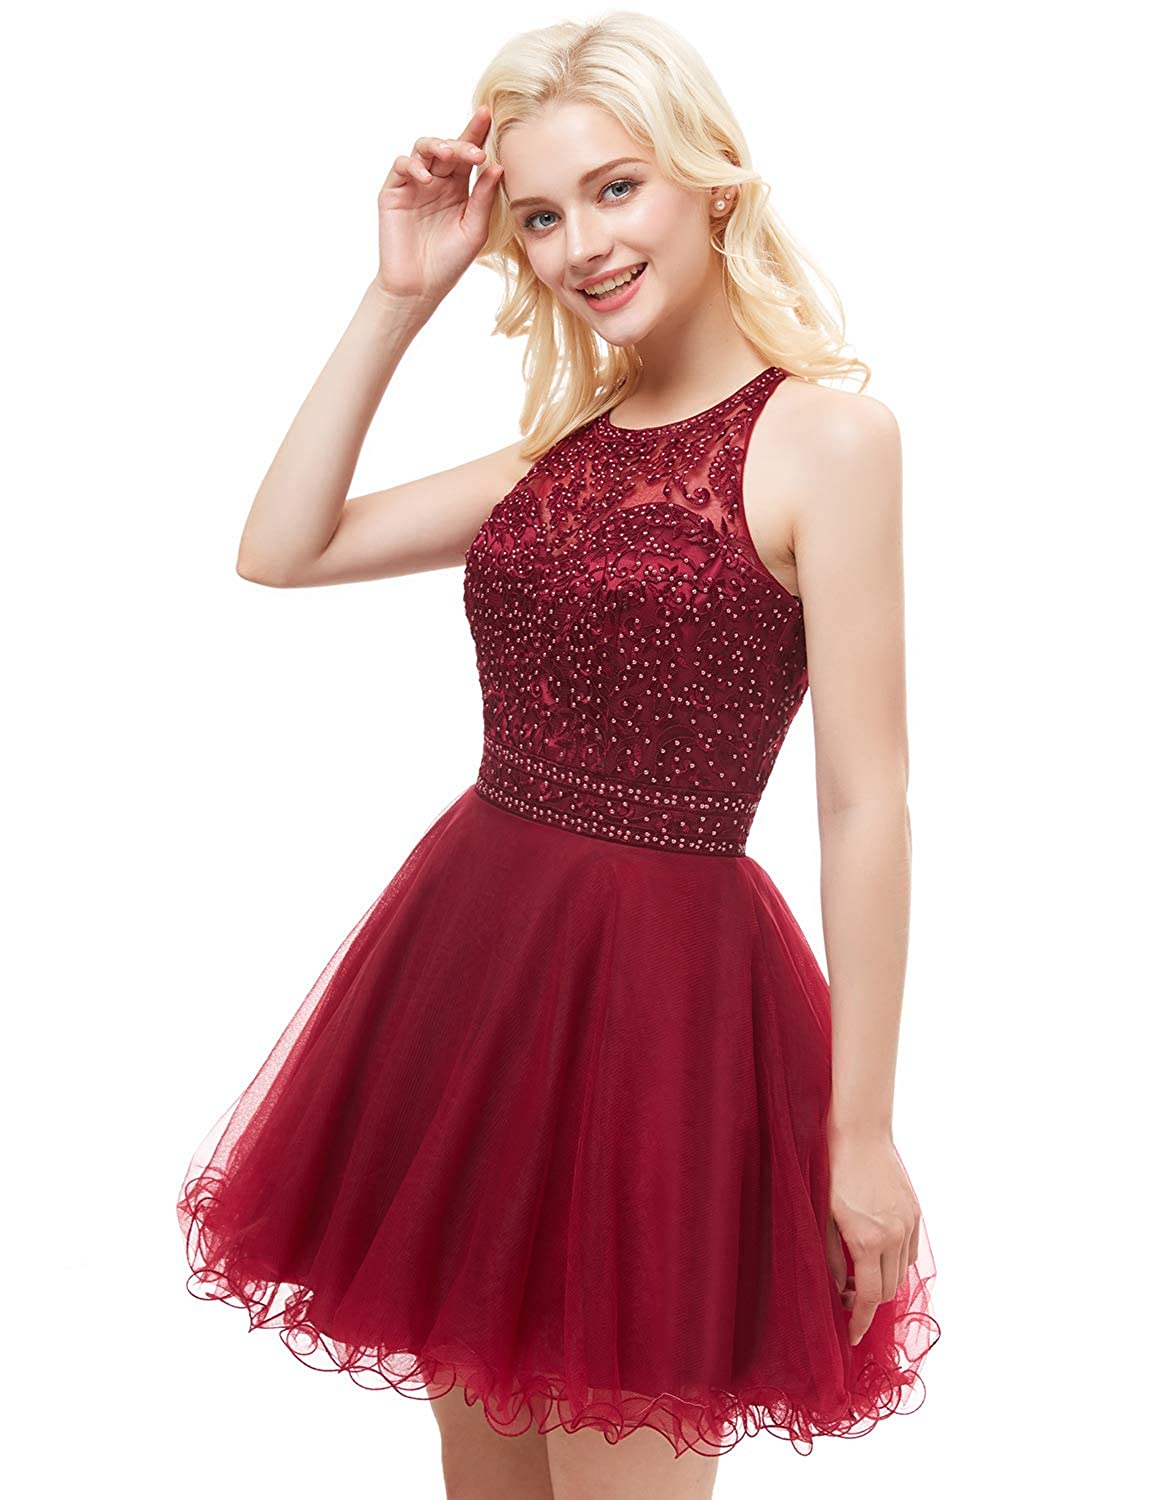 8d93a9540b Aurora Bridal Women s Tulle Beaded Prom Dresses 2018 Short Homecoming Gown  AH111 at Amazon Women s Clothing store